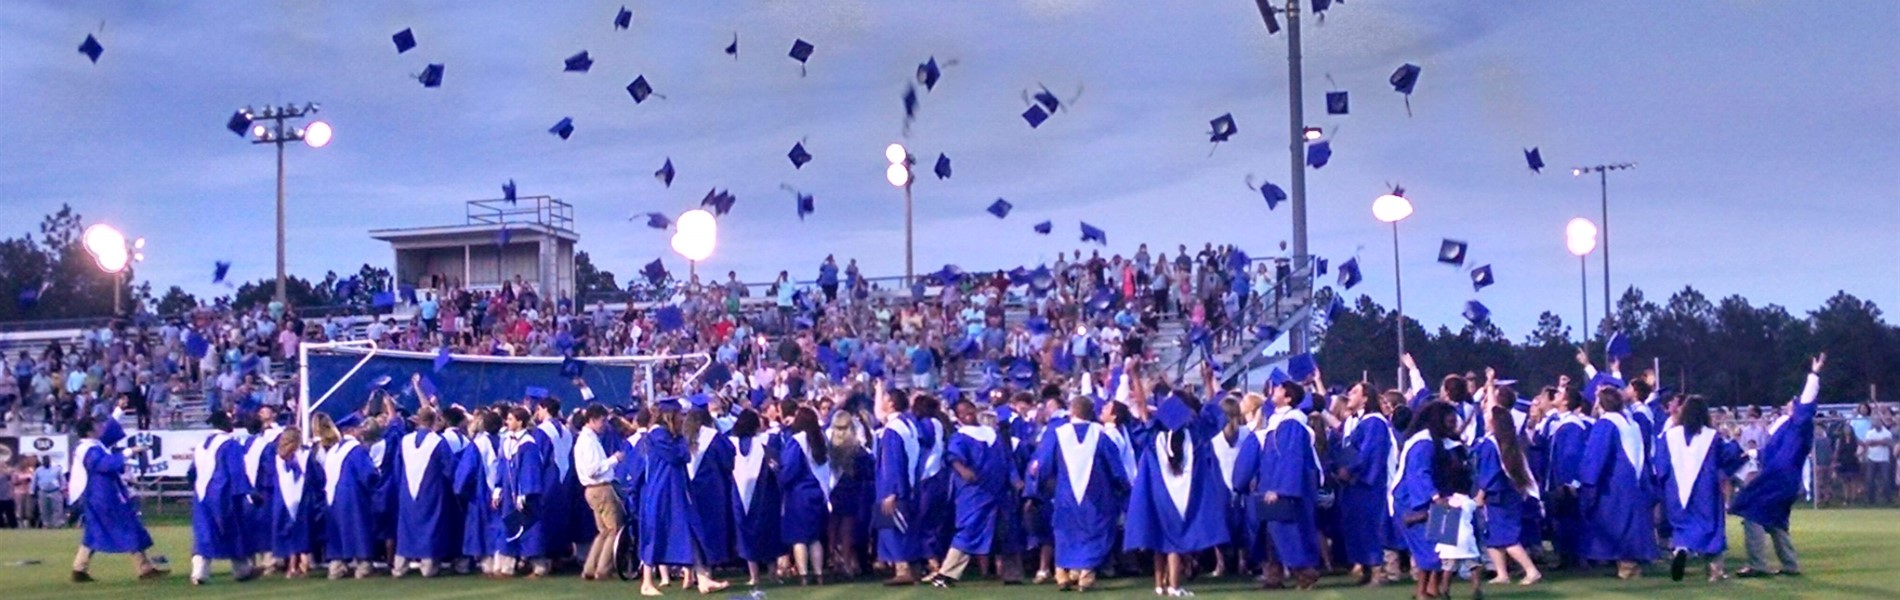 Pierce County High School graduates throwing graduation caps in the air